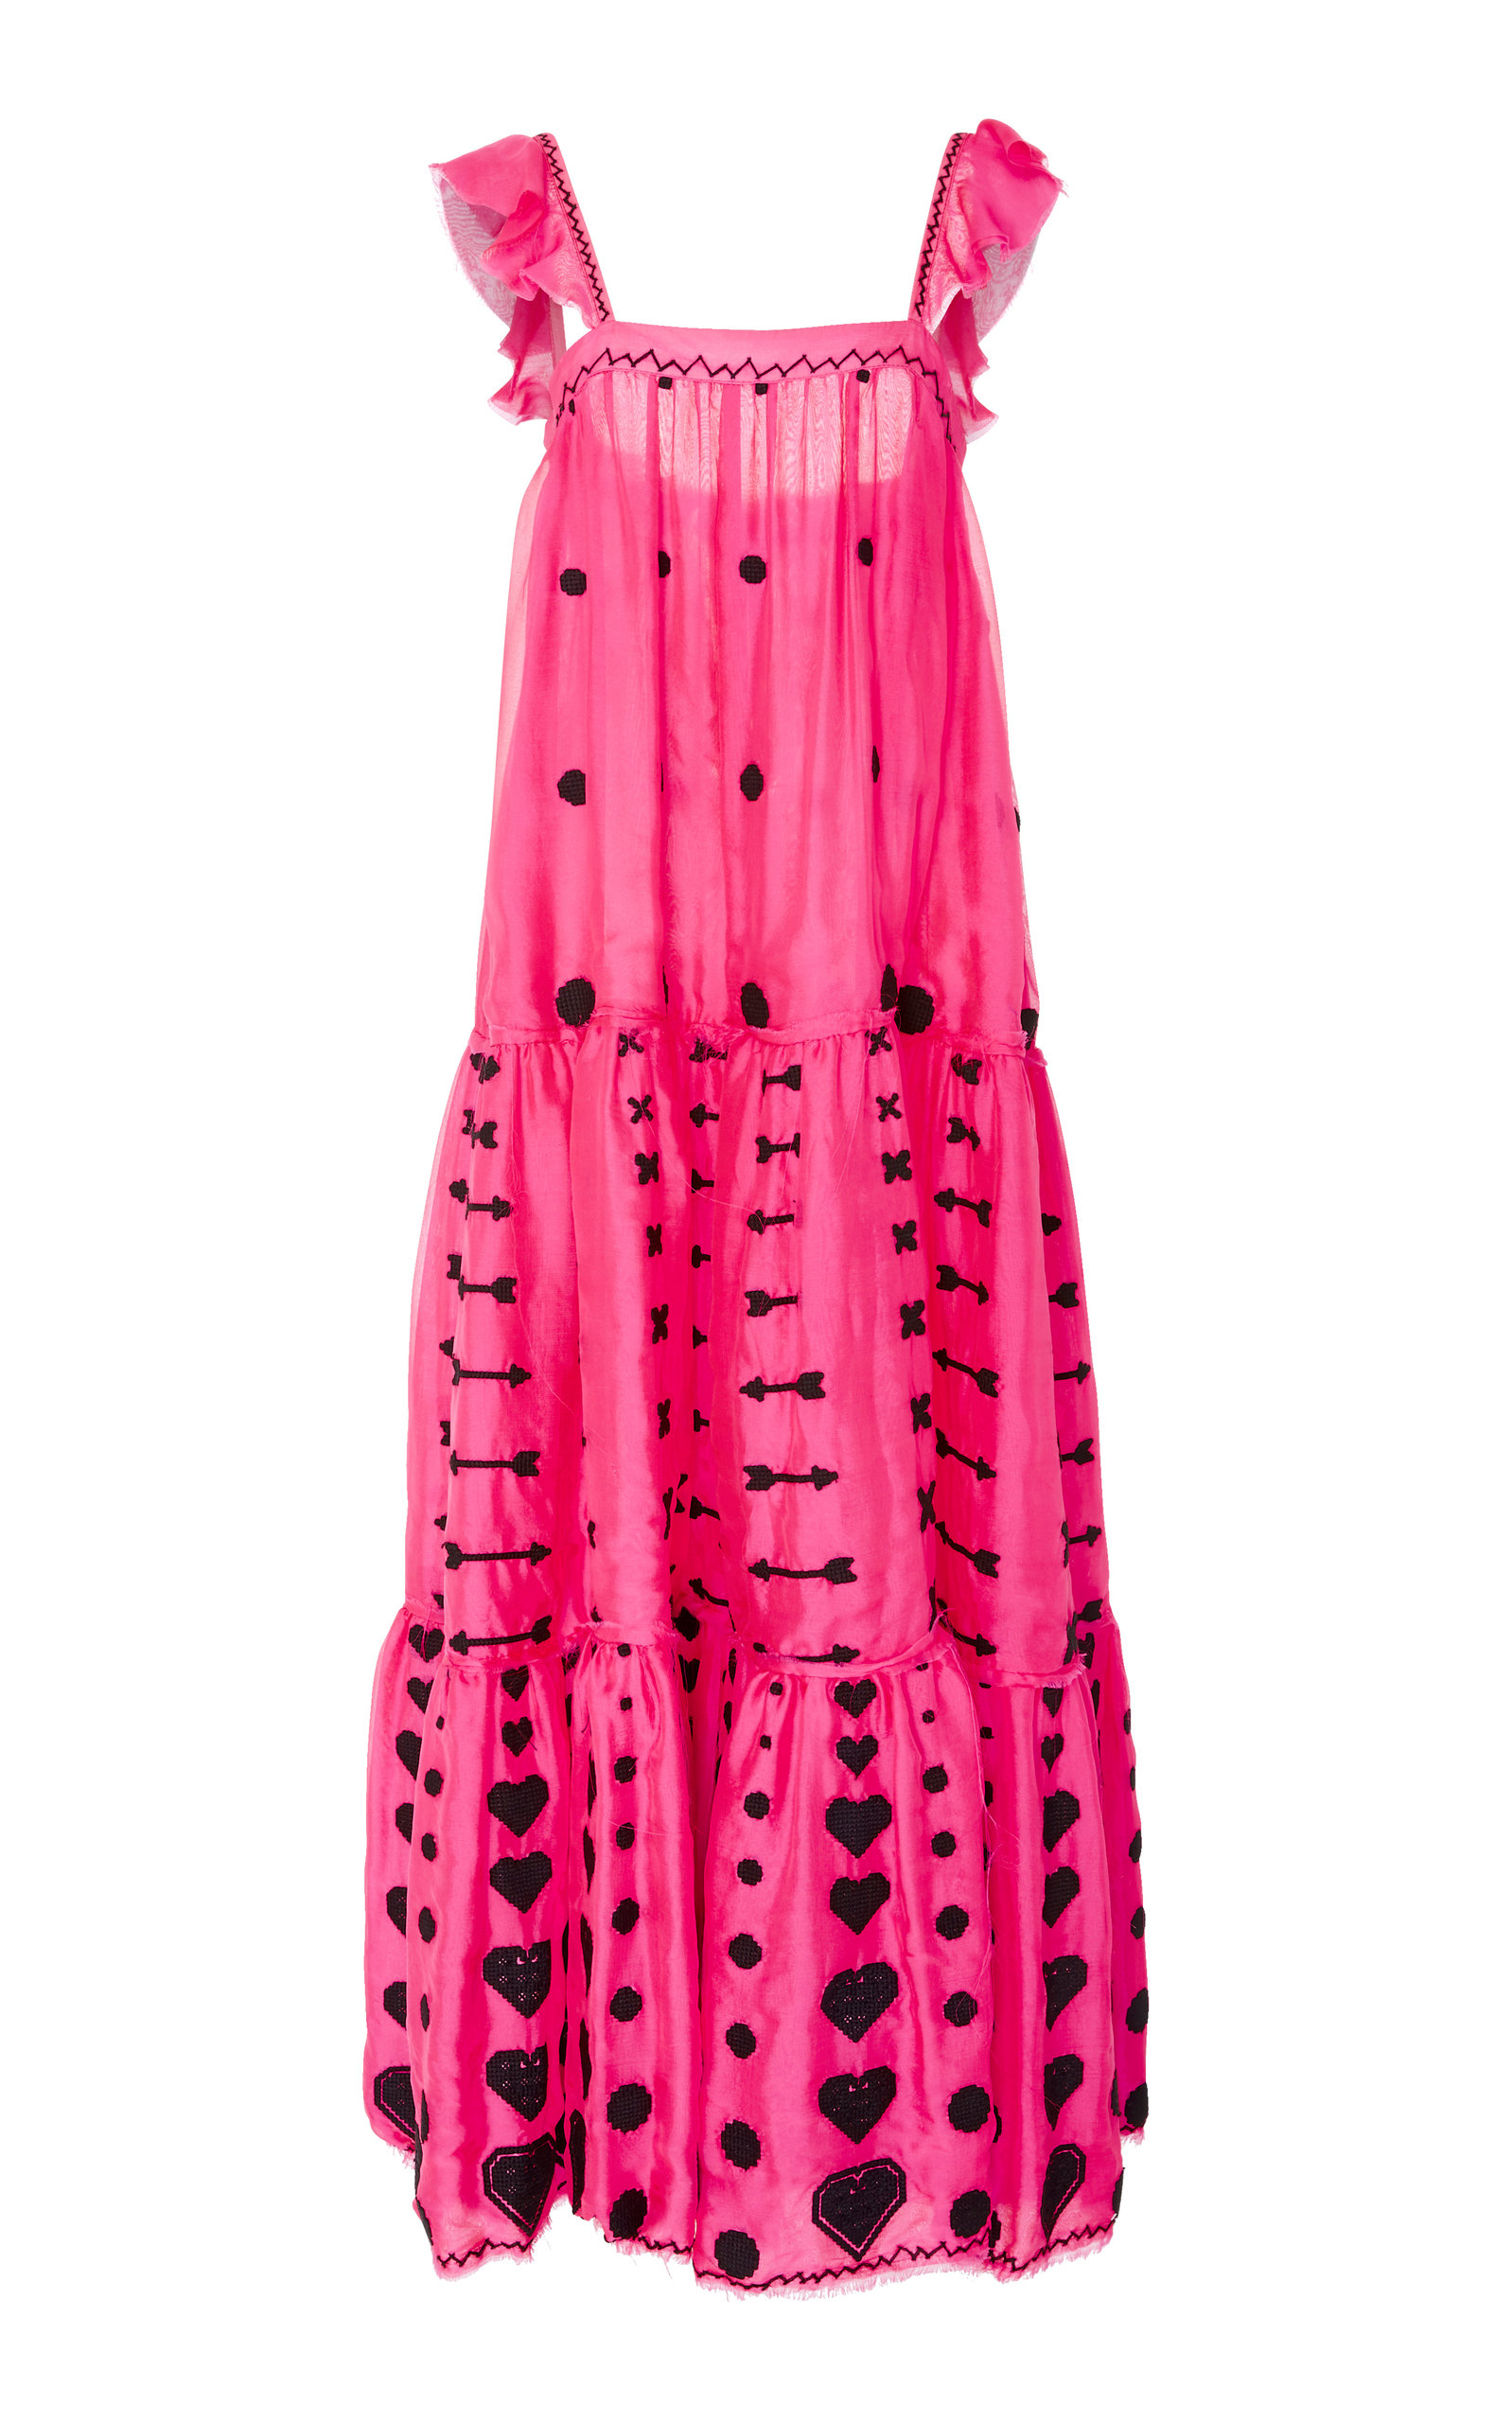 YULIYA MAGDYCH M'O EXCLUSIVE GRACE EMBROIDERED SILK MAXI DRESS